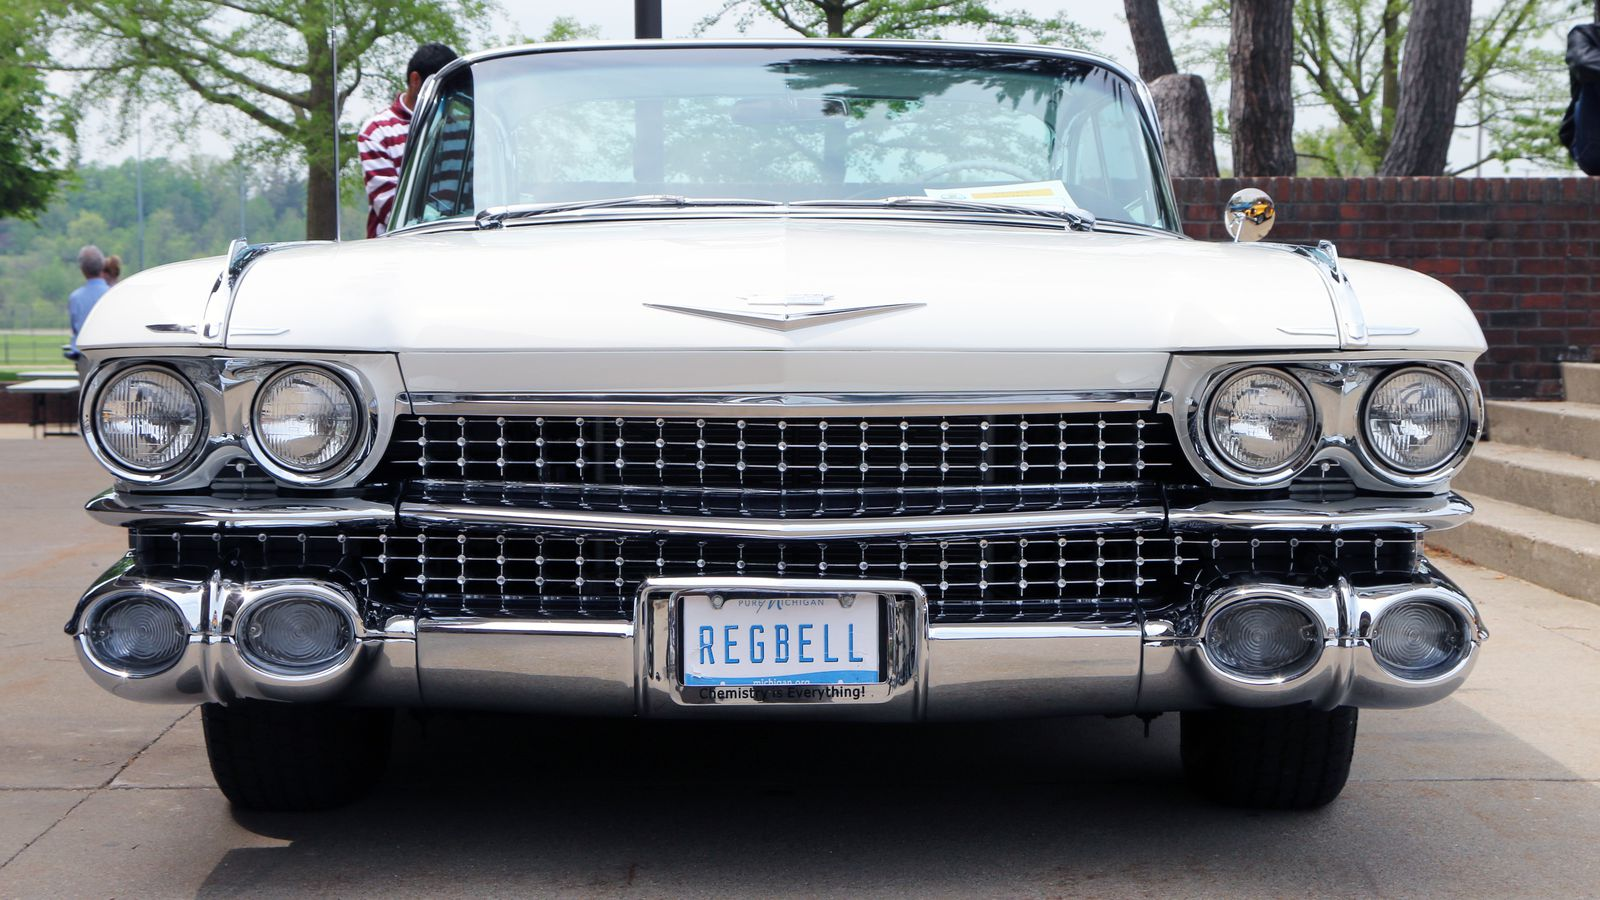 Obamacare's Cadillac tax, explained - Vox